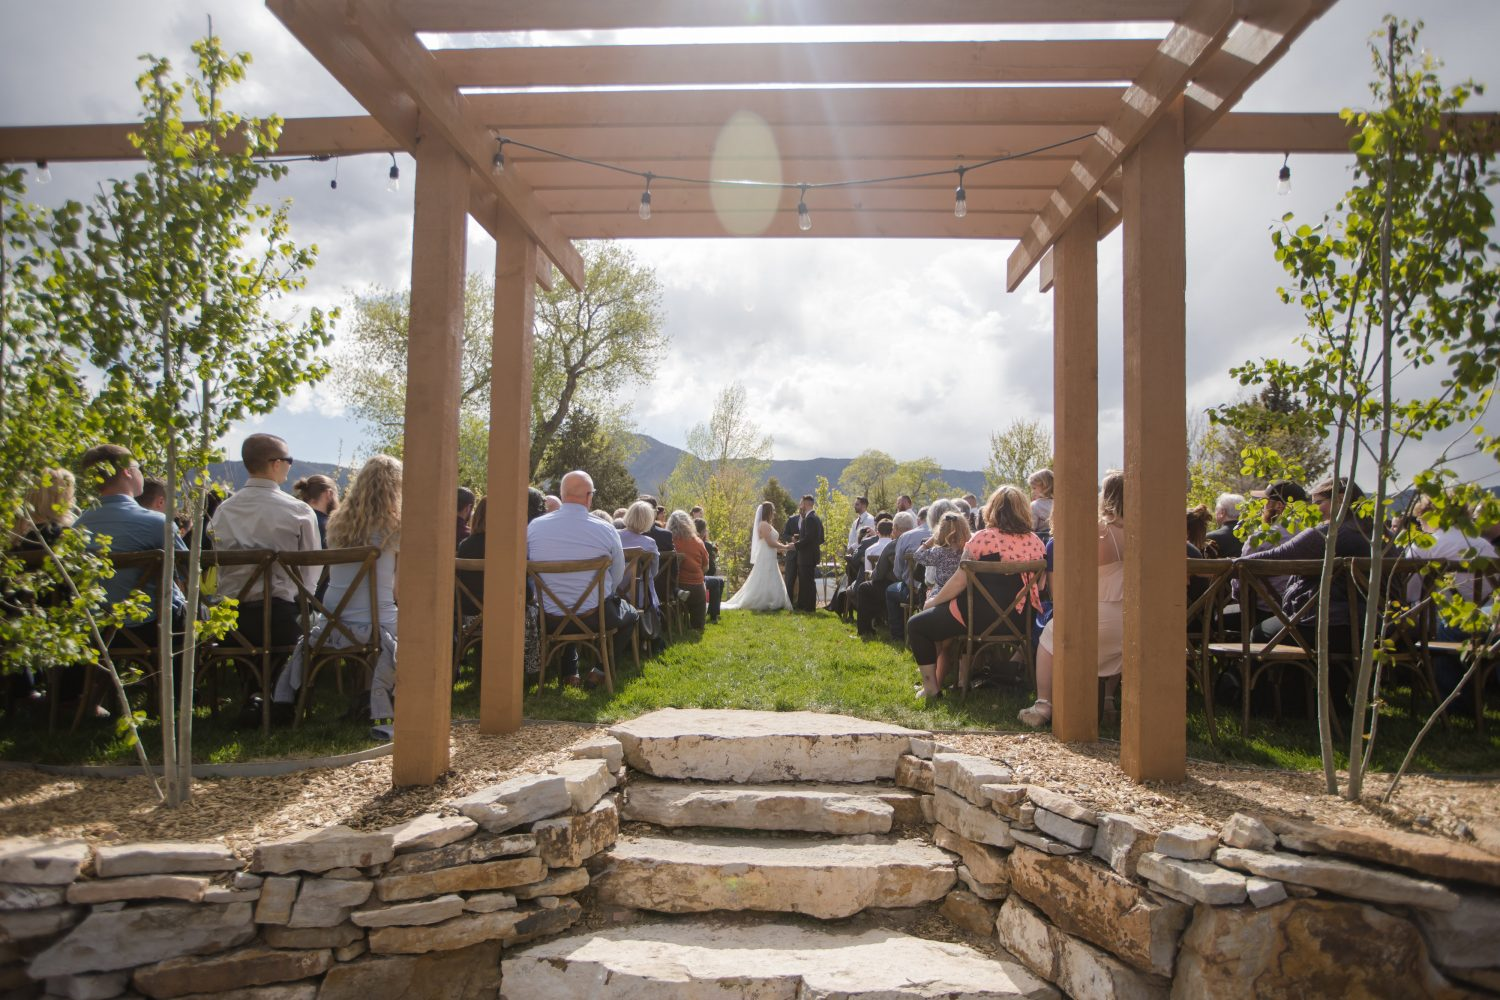 Outdoor Wedding Ceremony Wooden Arch at Hearth House - Gunn Wedding 2019 Hearth House